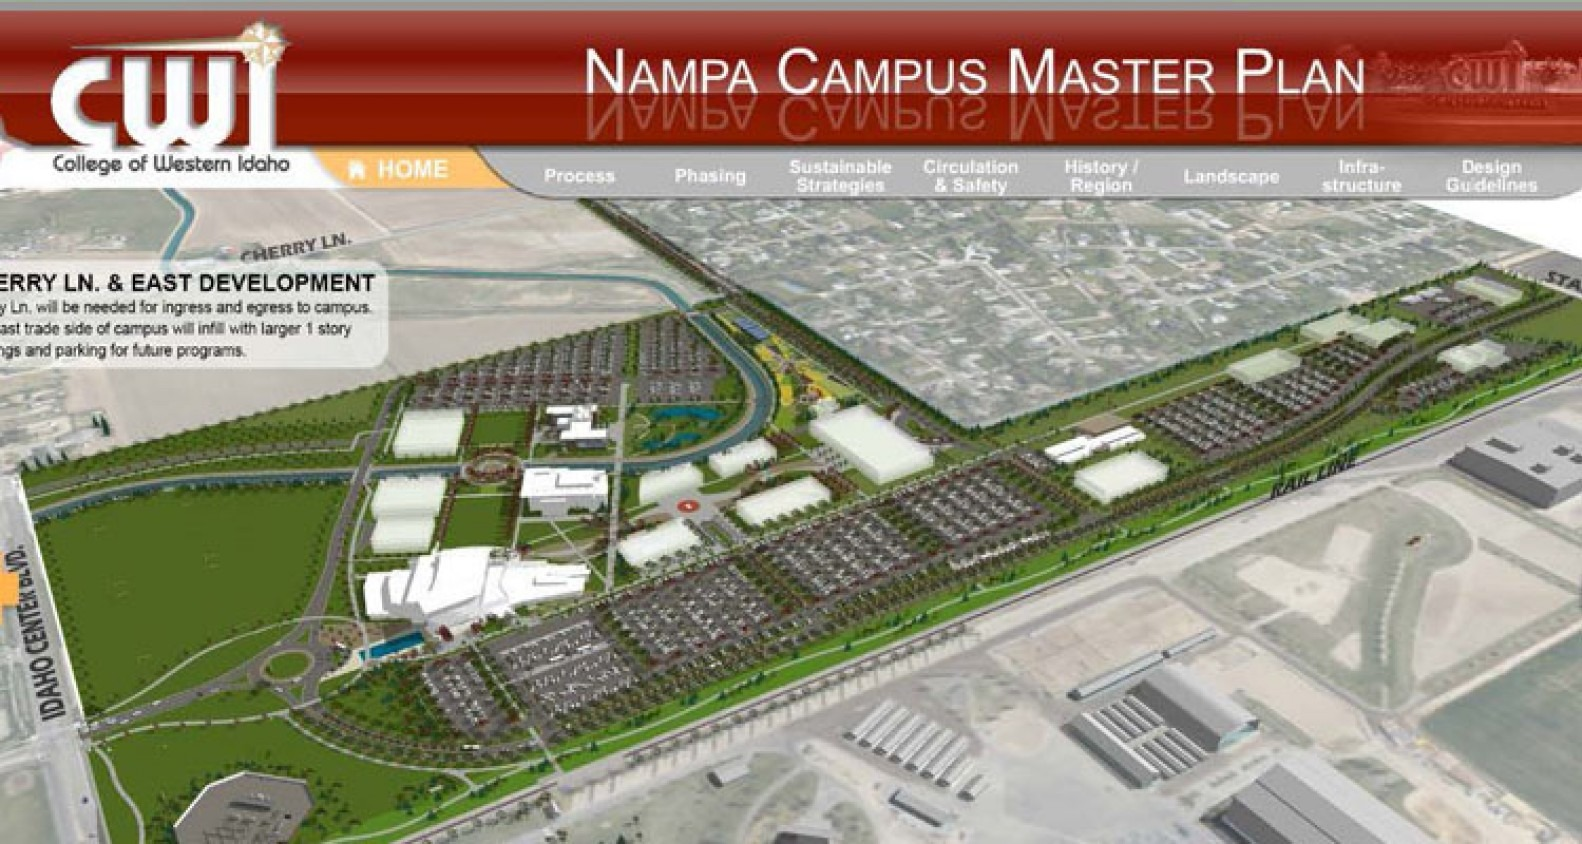 Nampa Campus master plan outlining development with new buildings